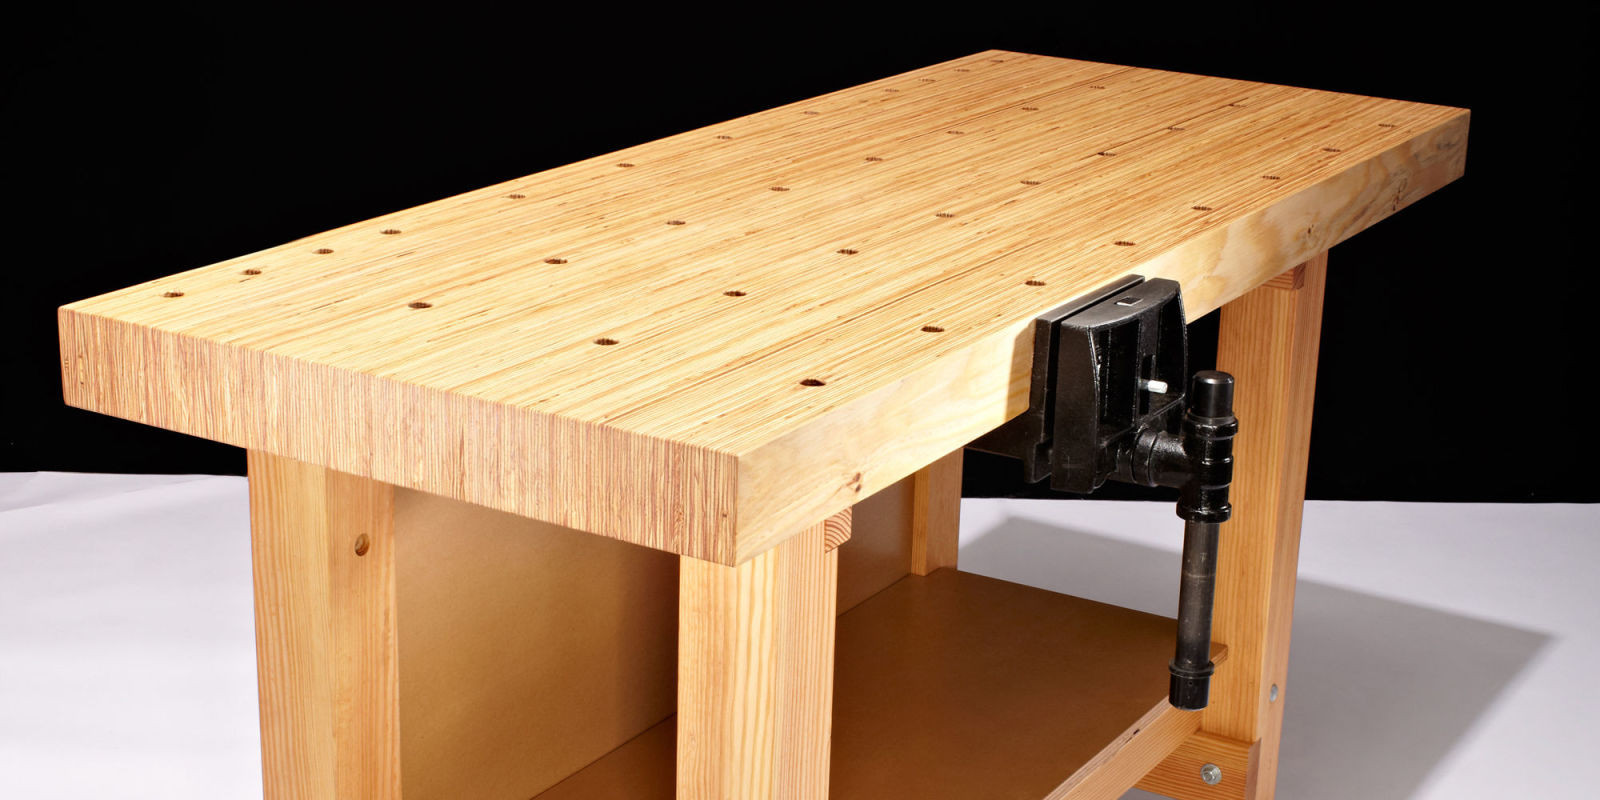 Workbench Plans DIY  How to Build This DIY Workbench